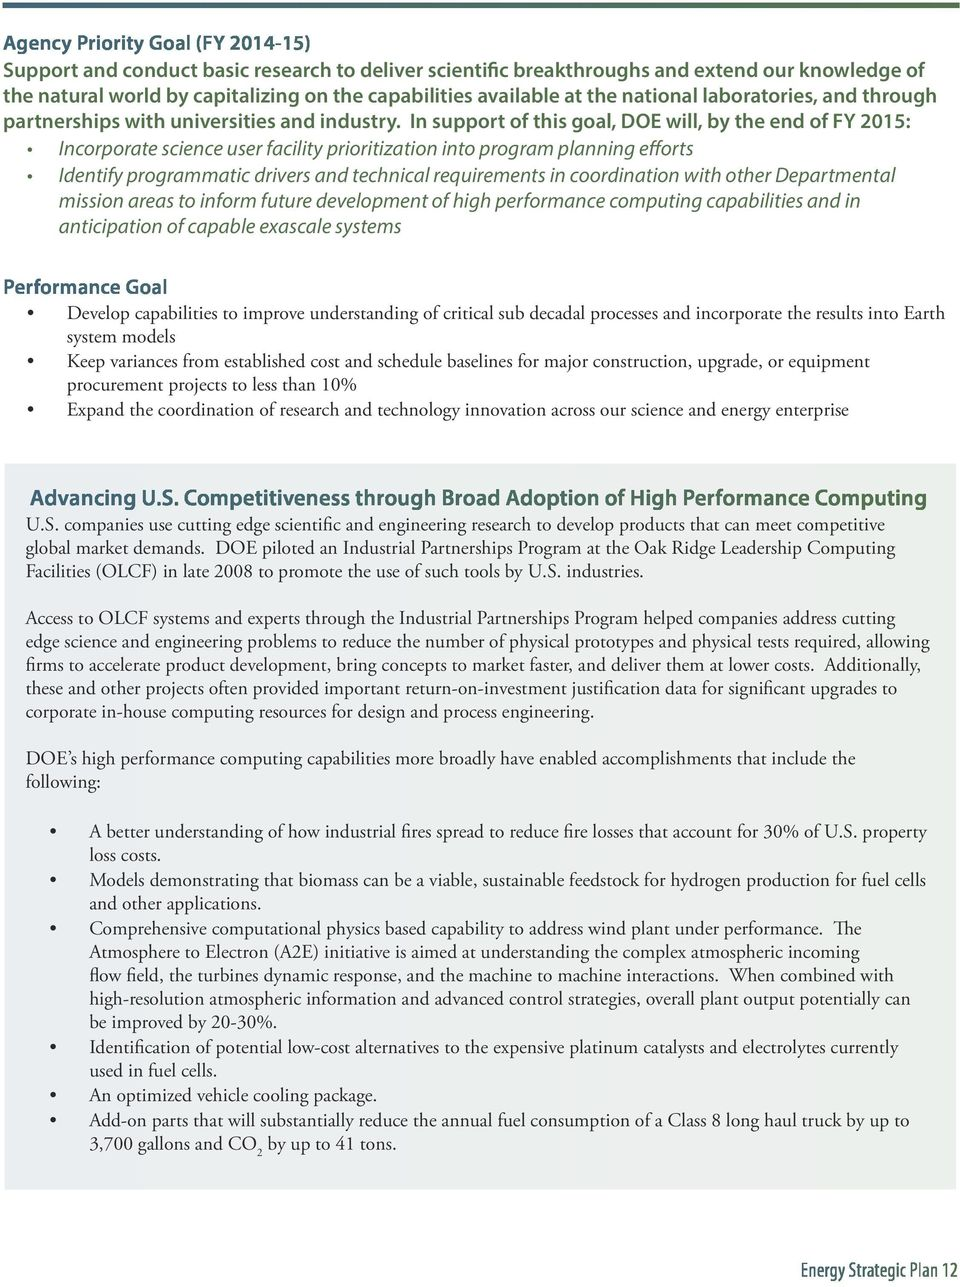 In support of this goal, DOE will, by the end of FY 2015: Incorporate science user facility prioritization into program planning efforts Identify programmatic drivers and technical requirements in